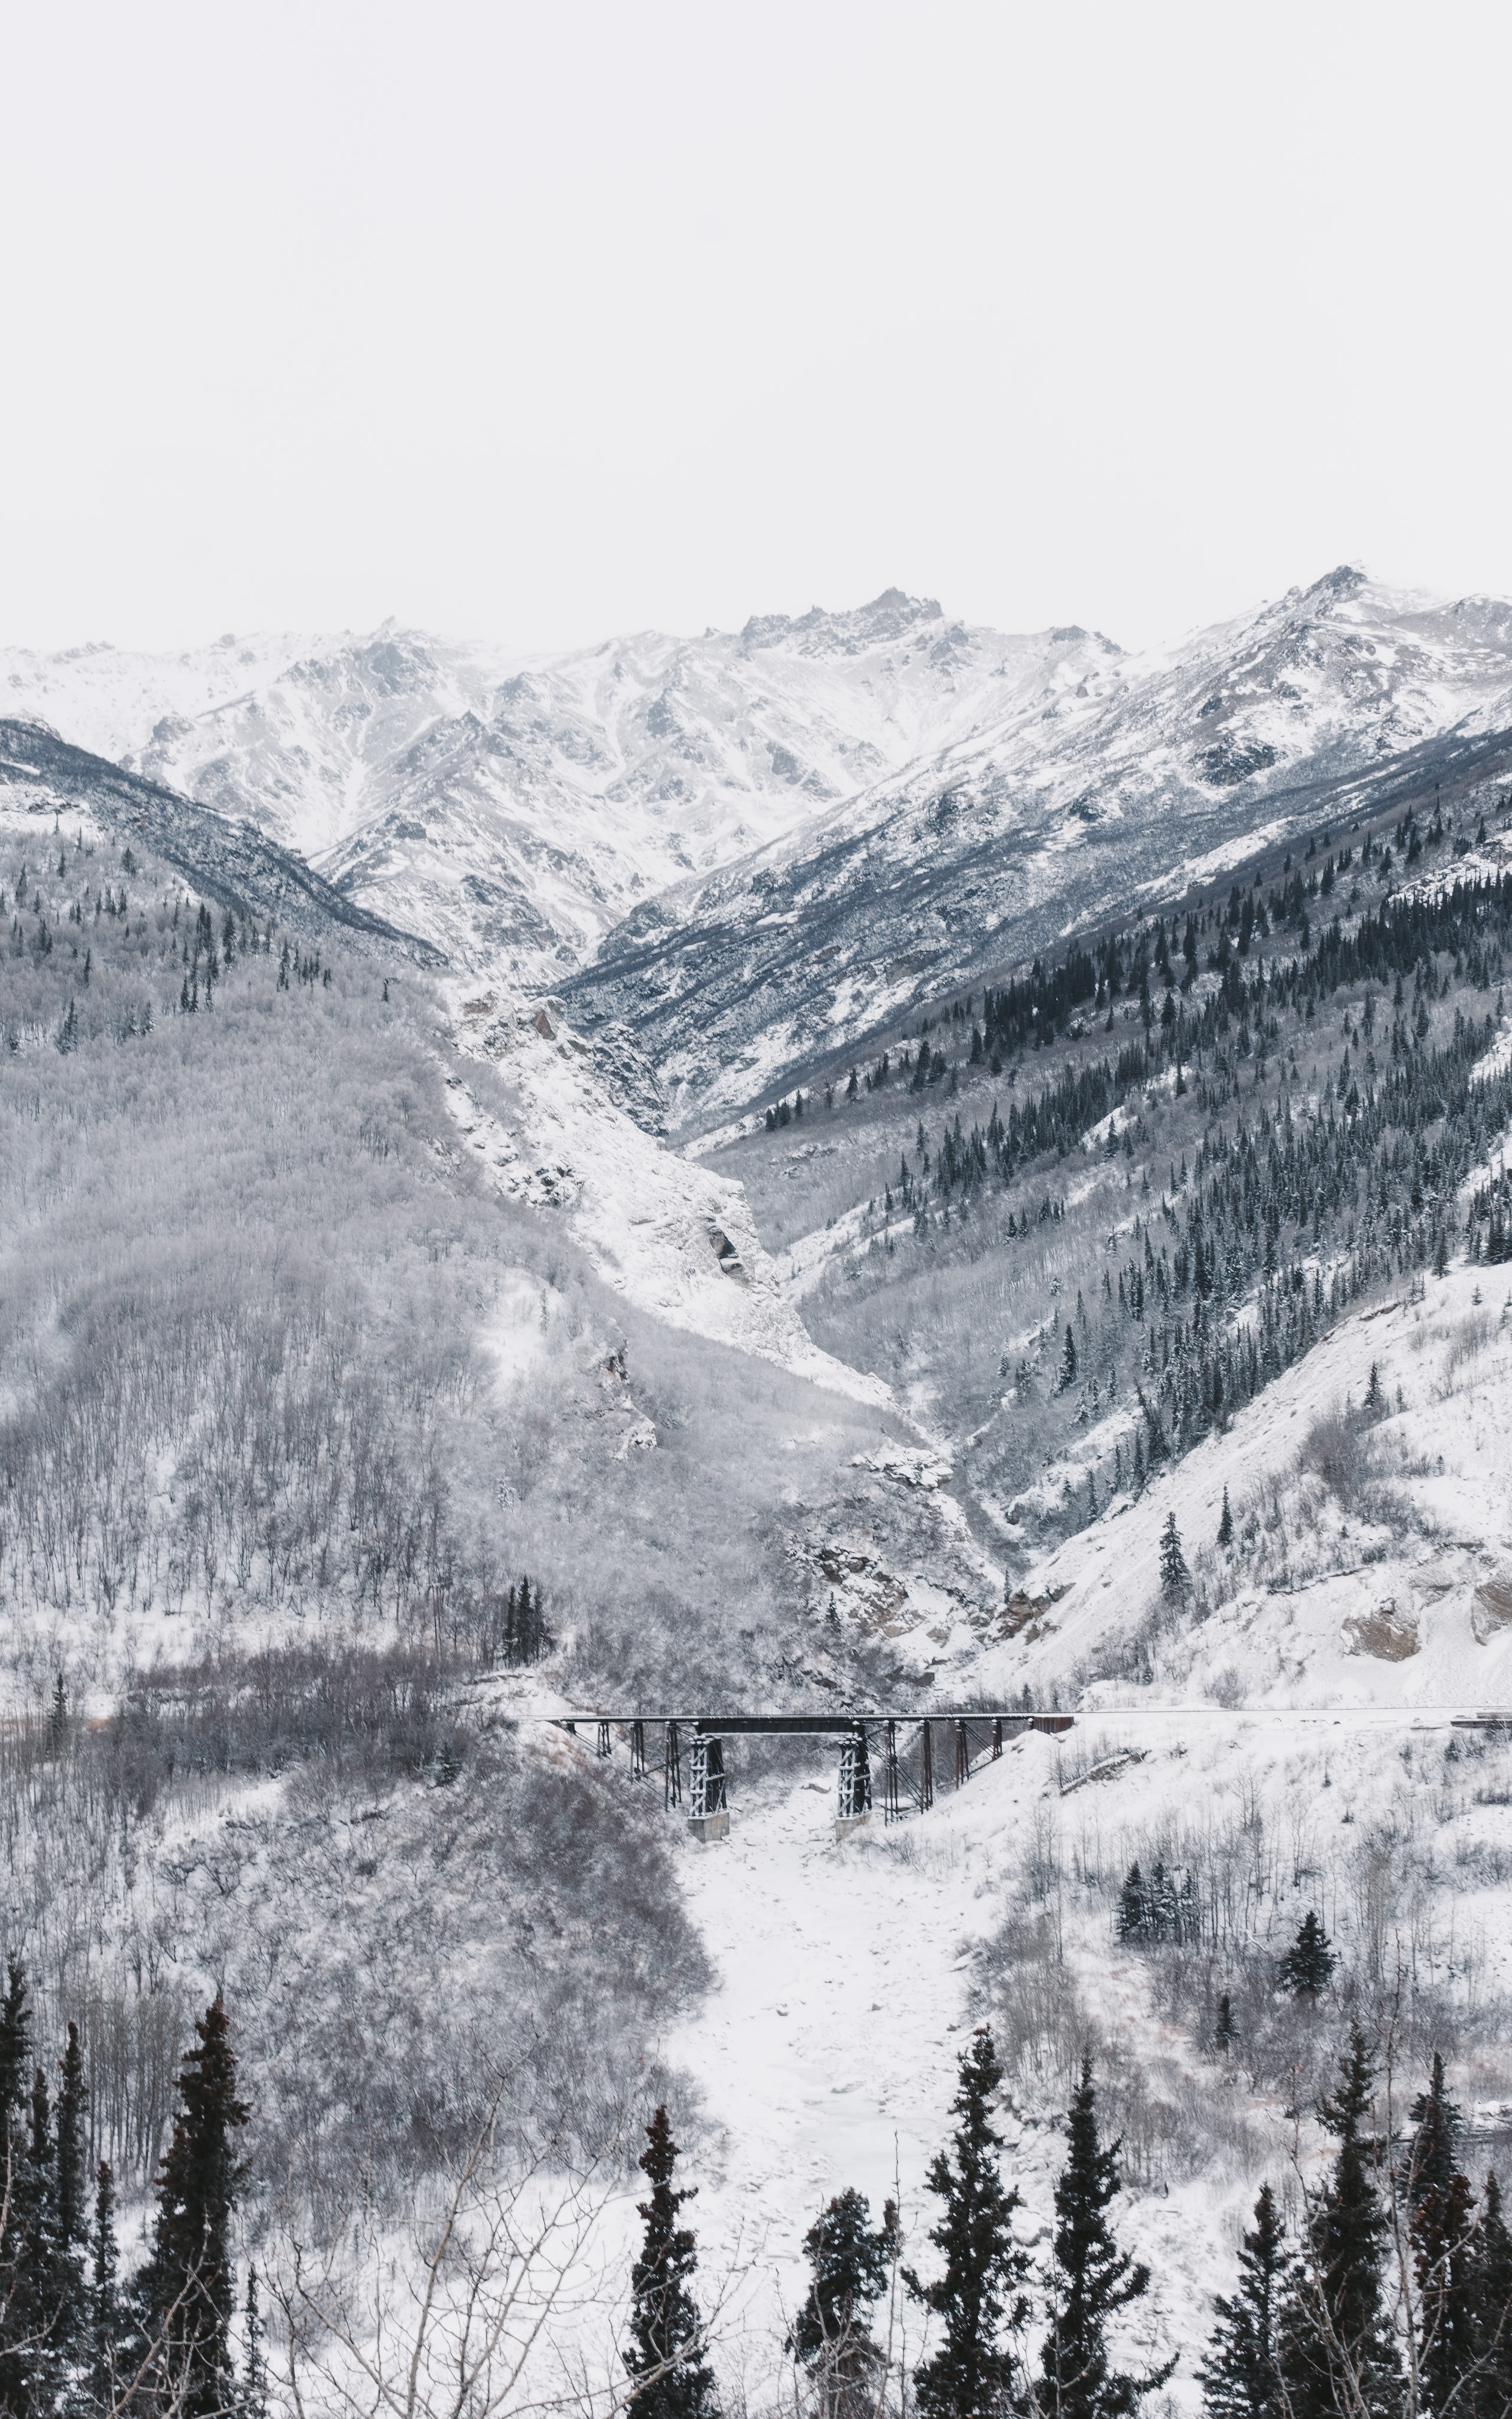 A distant shot of a bridge in a snowy mountain valley